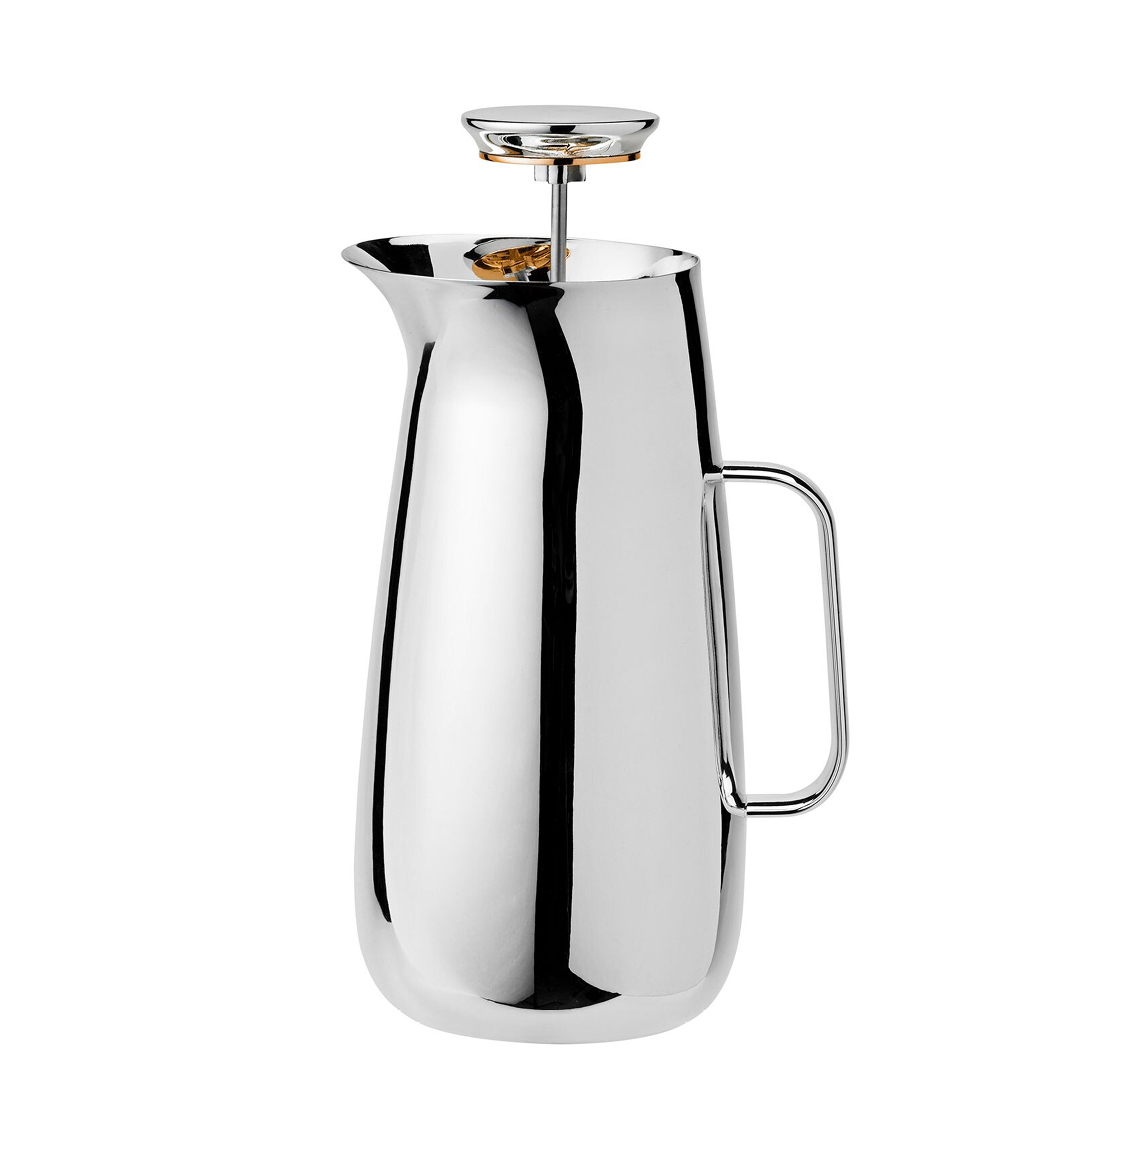 Norman Foster X Stelton Stainless Steel Foster French Press